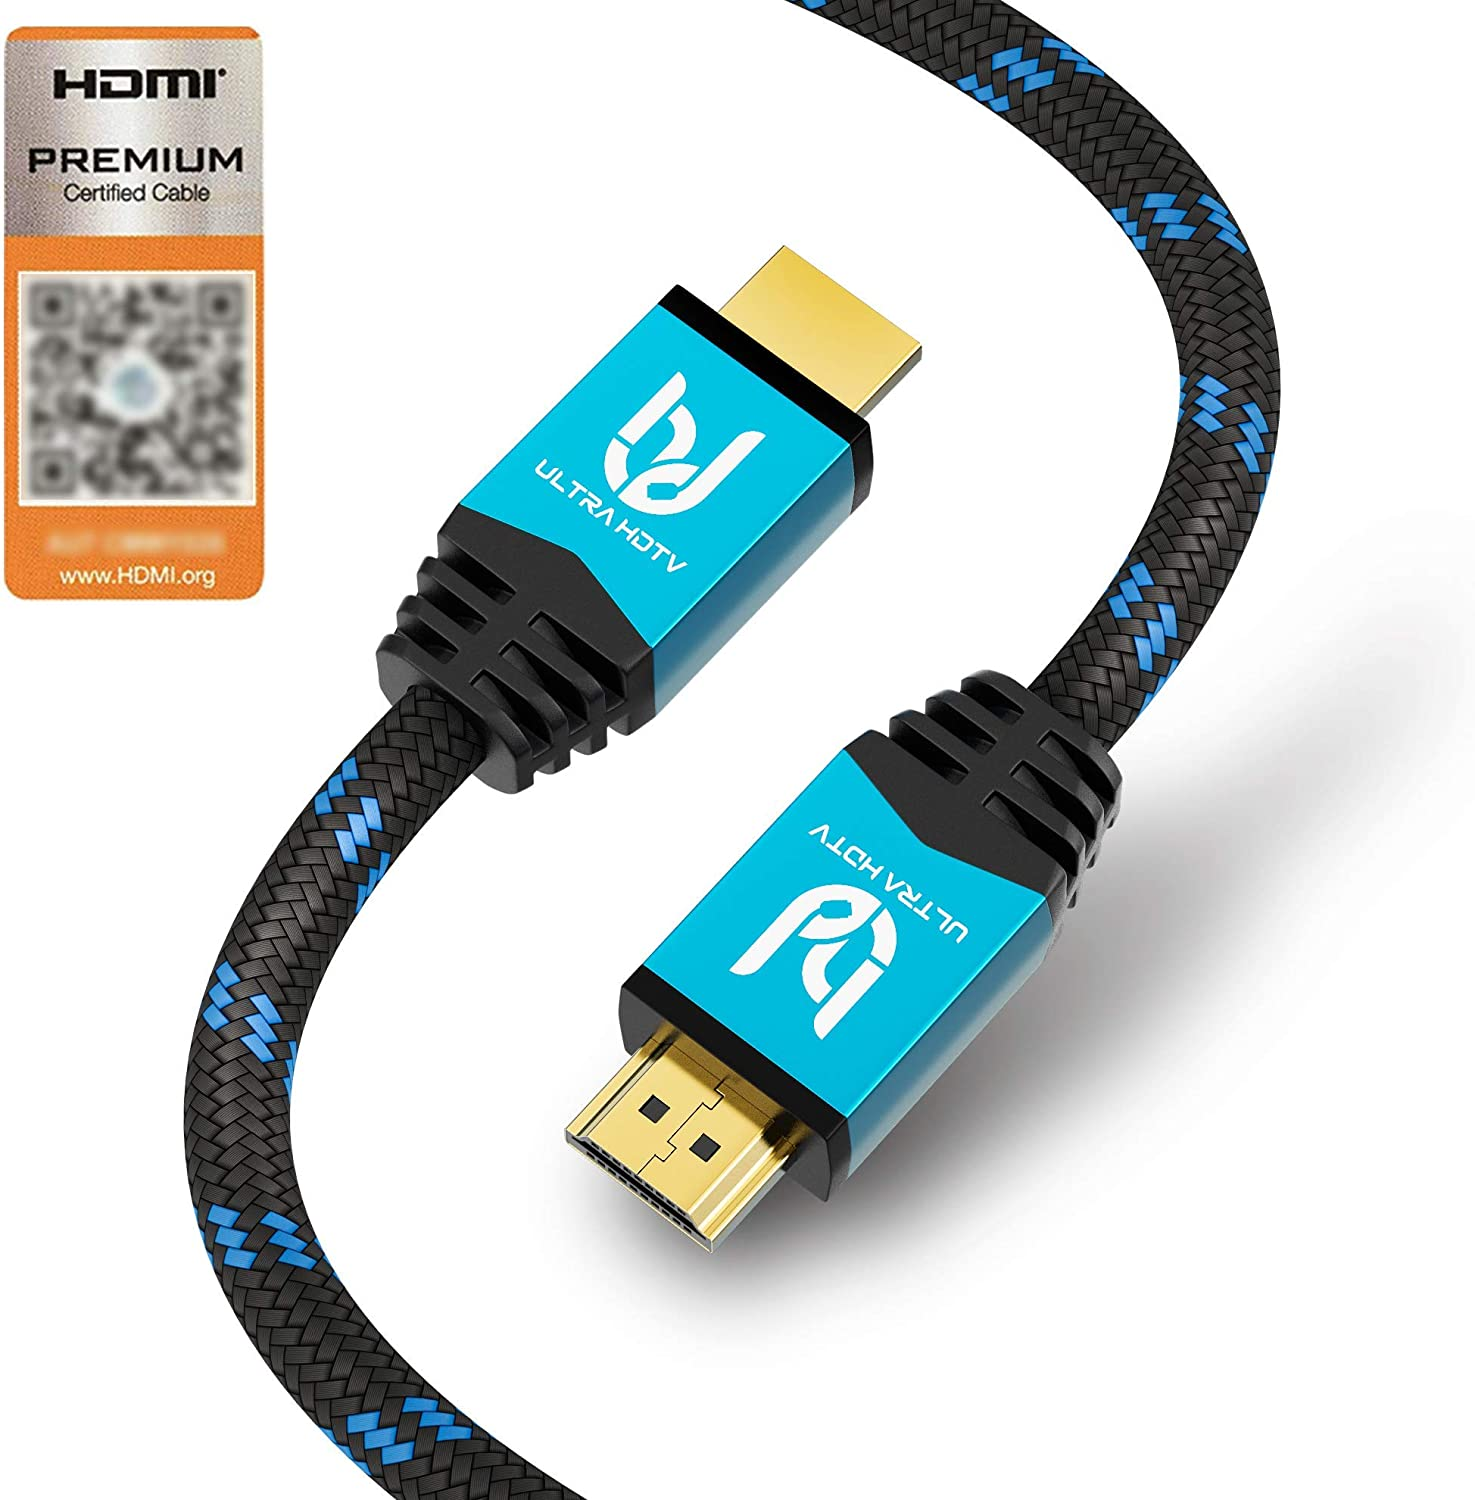 CABLE HDMI 1.4 ETHERNET PS3 HD TV 3D BLU RAY 1080p HIGH SPEED1.5 2 3 5M METRE